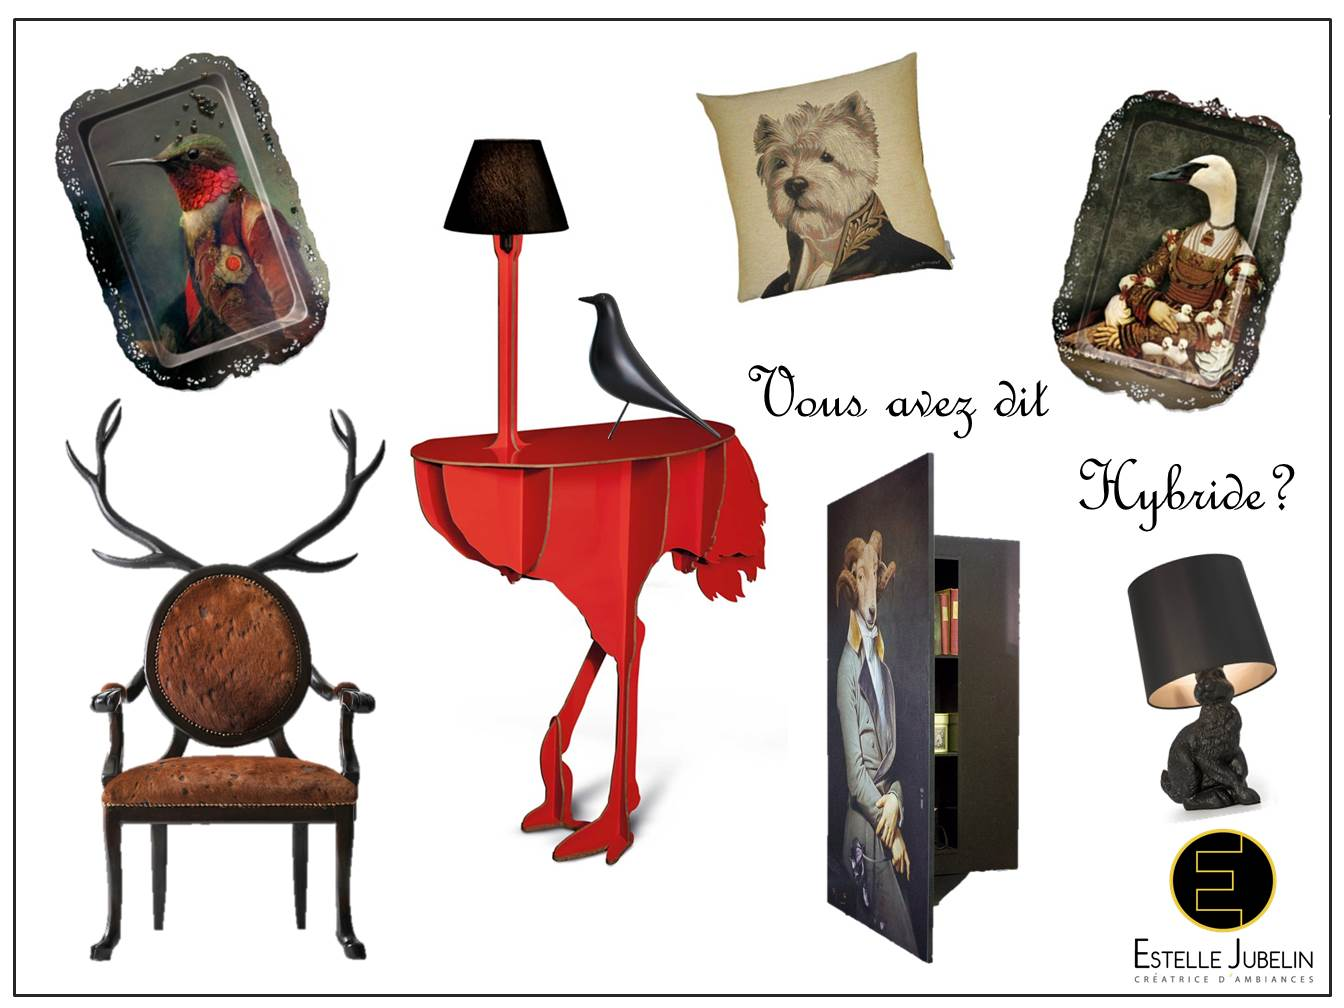 les animaux dans la d co estelle jubelinestelle jubelin. Black Bedroom Furniture Sets. Home Design Ideas